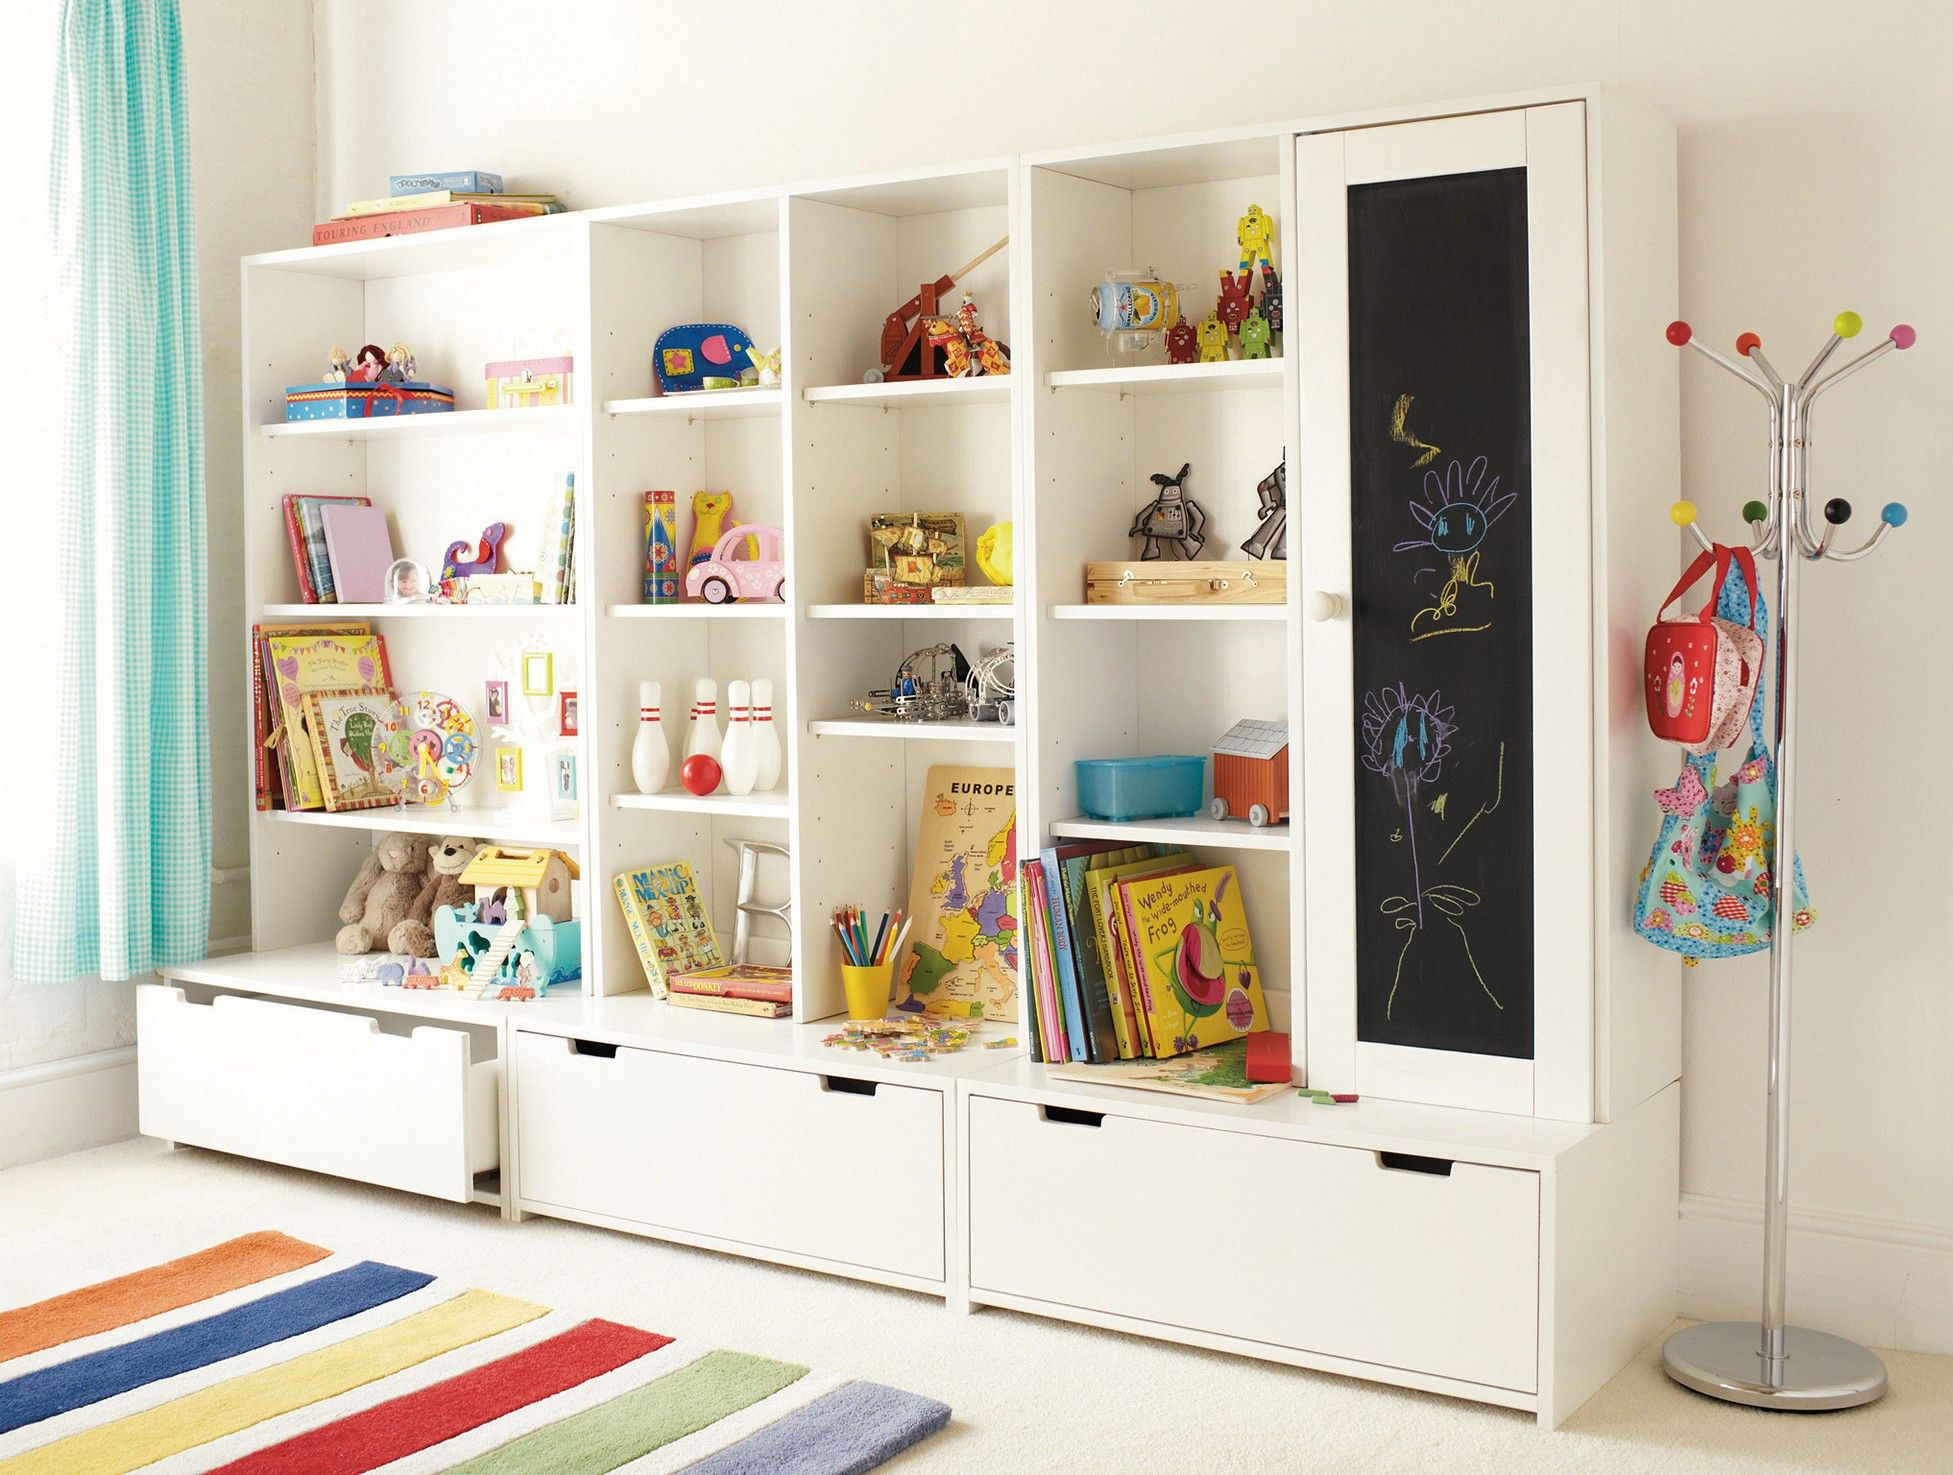 Living Room Toy Storage Furniture Amalfi Leather Collection 7 1 Ideas Diy Plans In A Small Space Your Kids Will For Spaces Learn How To Organize Toys And